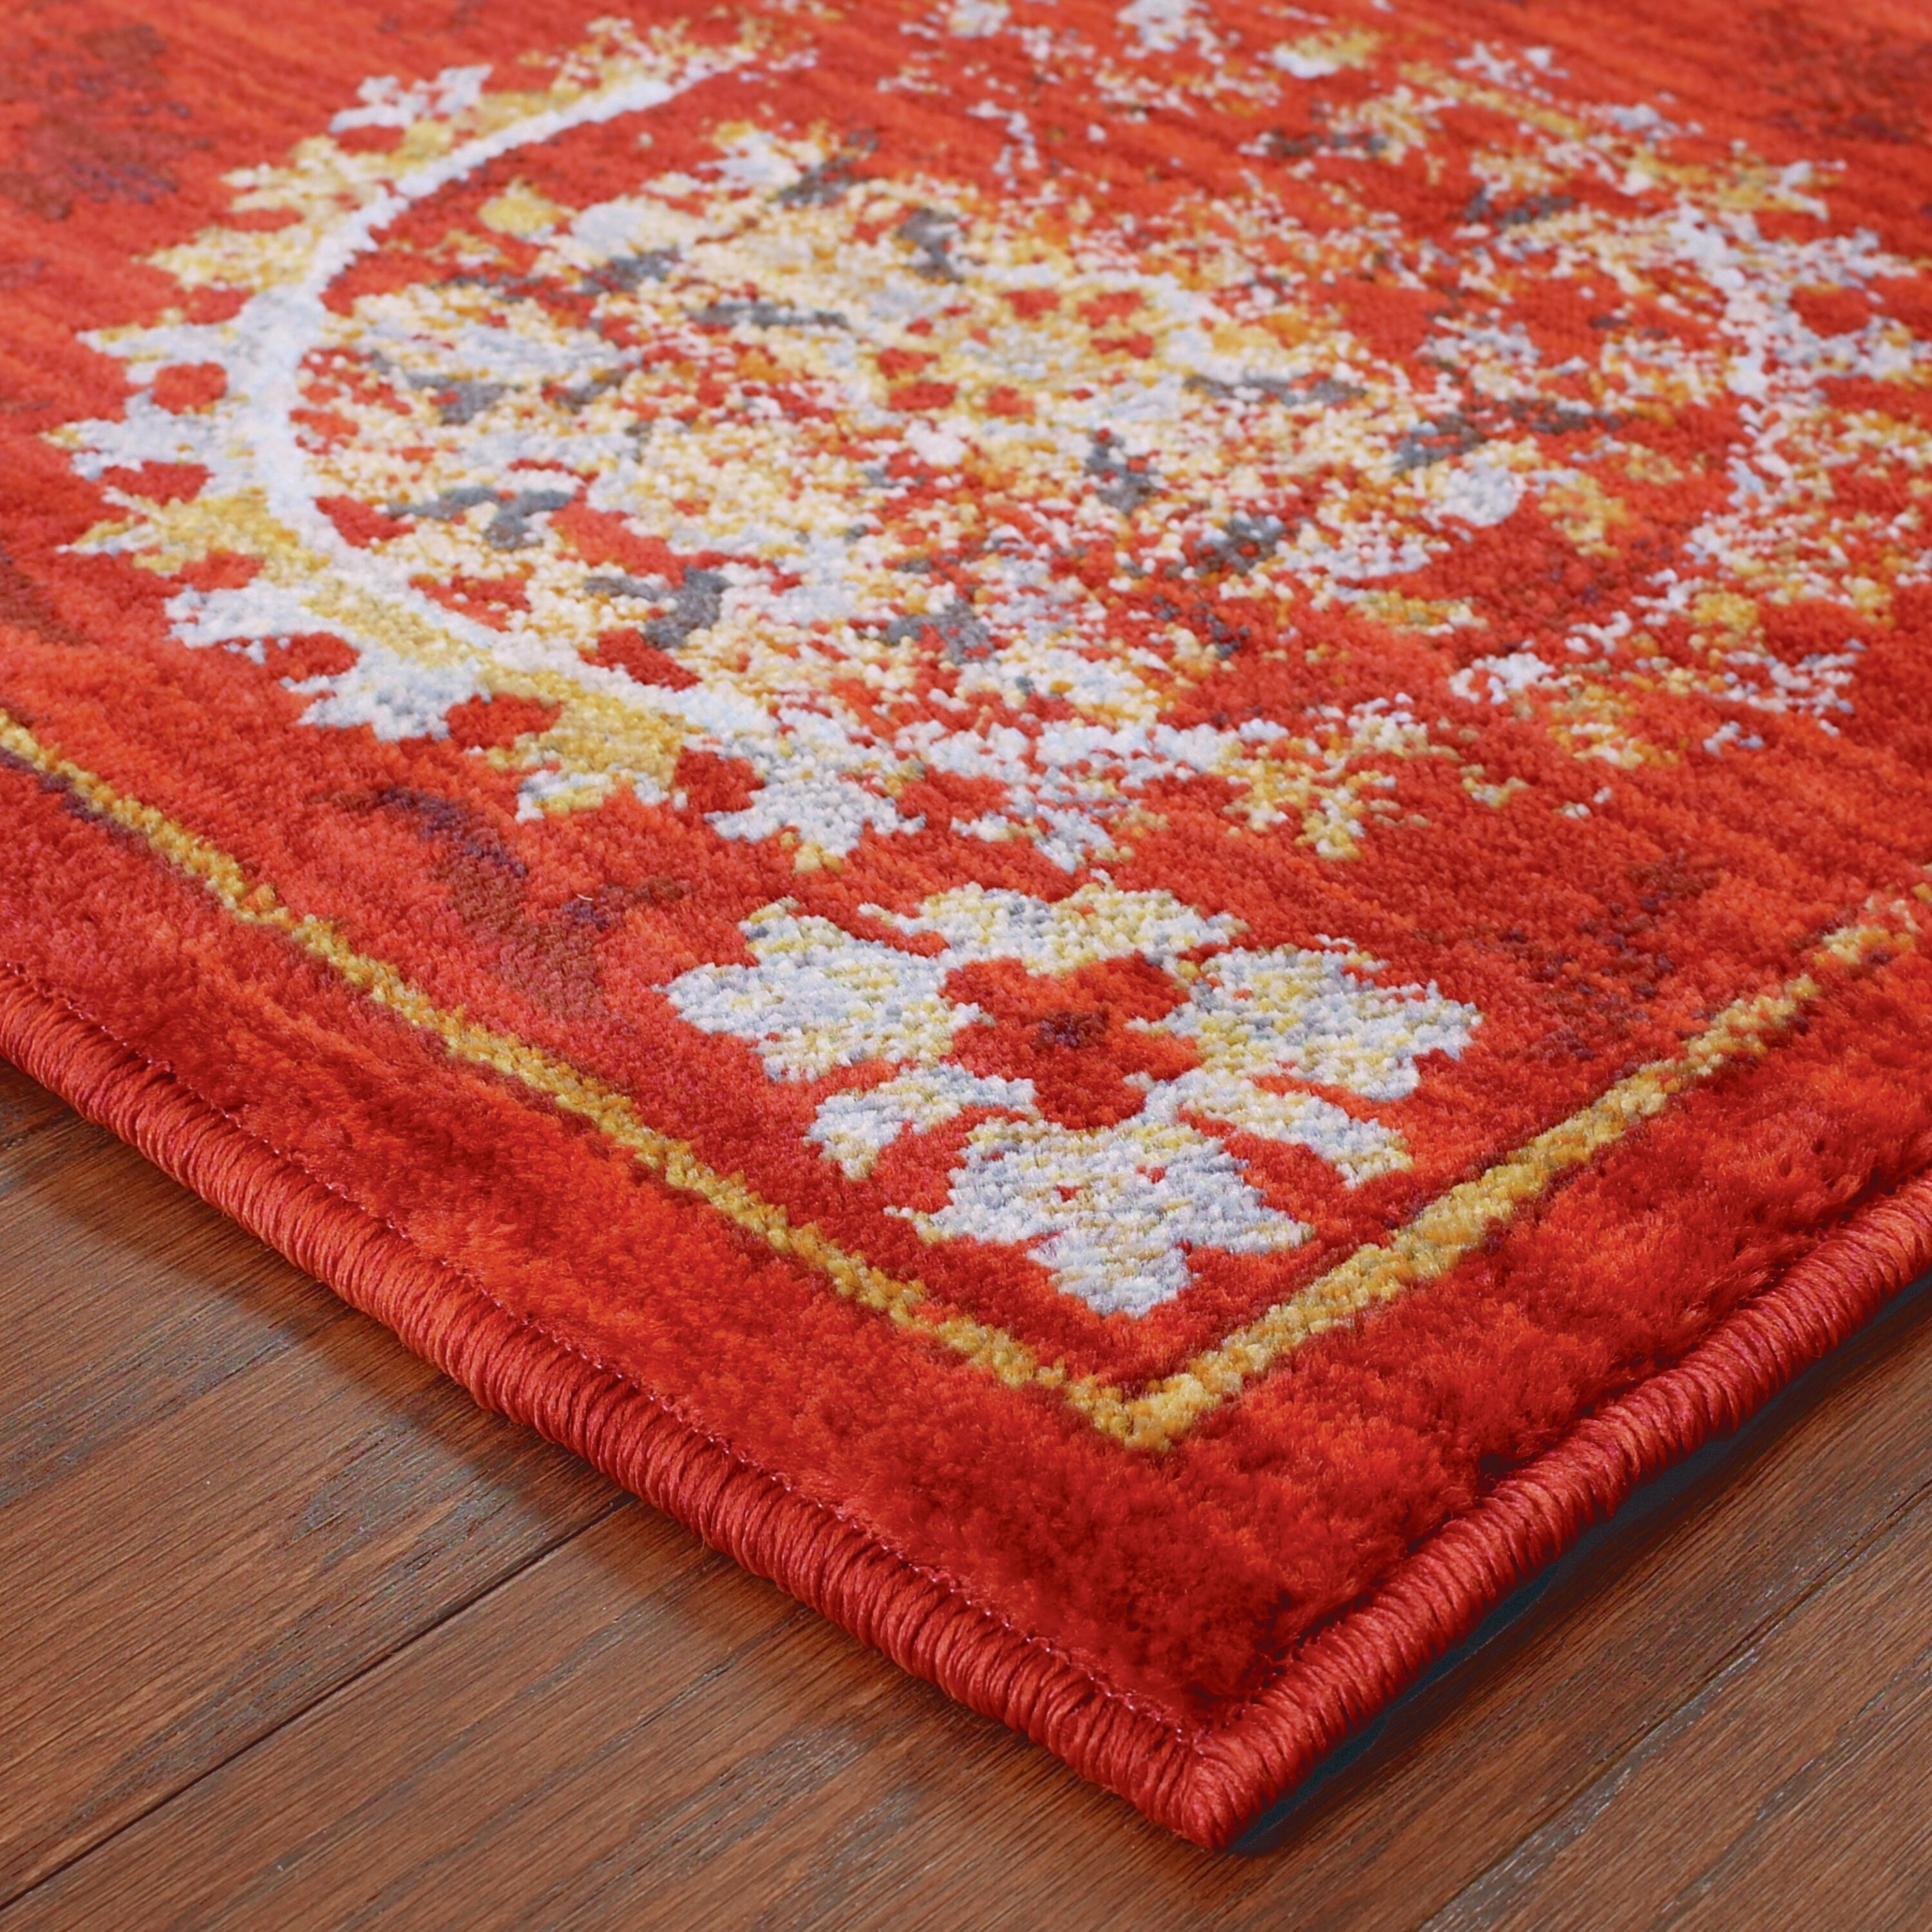 The conestoga trading co agave red gold area rug wayfair for Red and gold area rugs